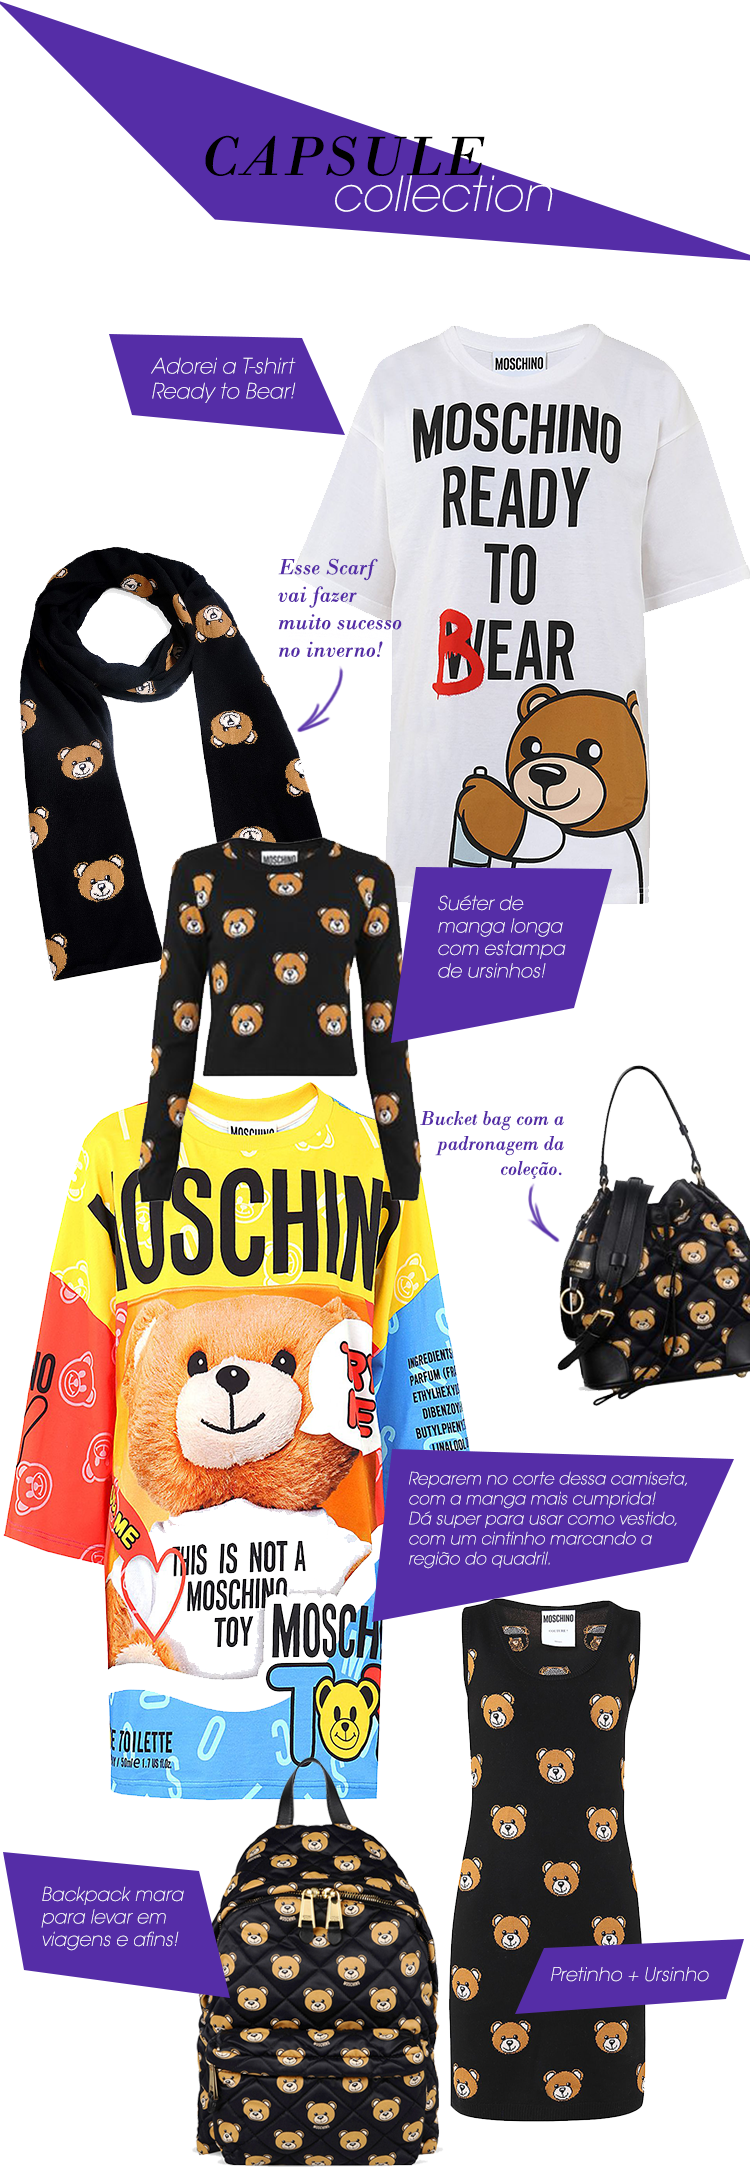 dede_blog_post_highlights_moschino_02